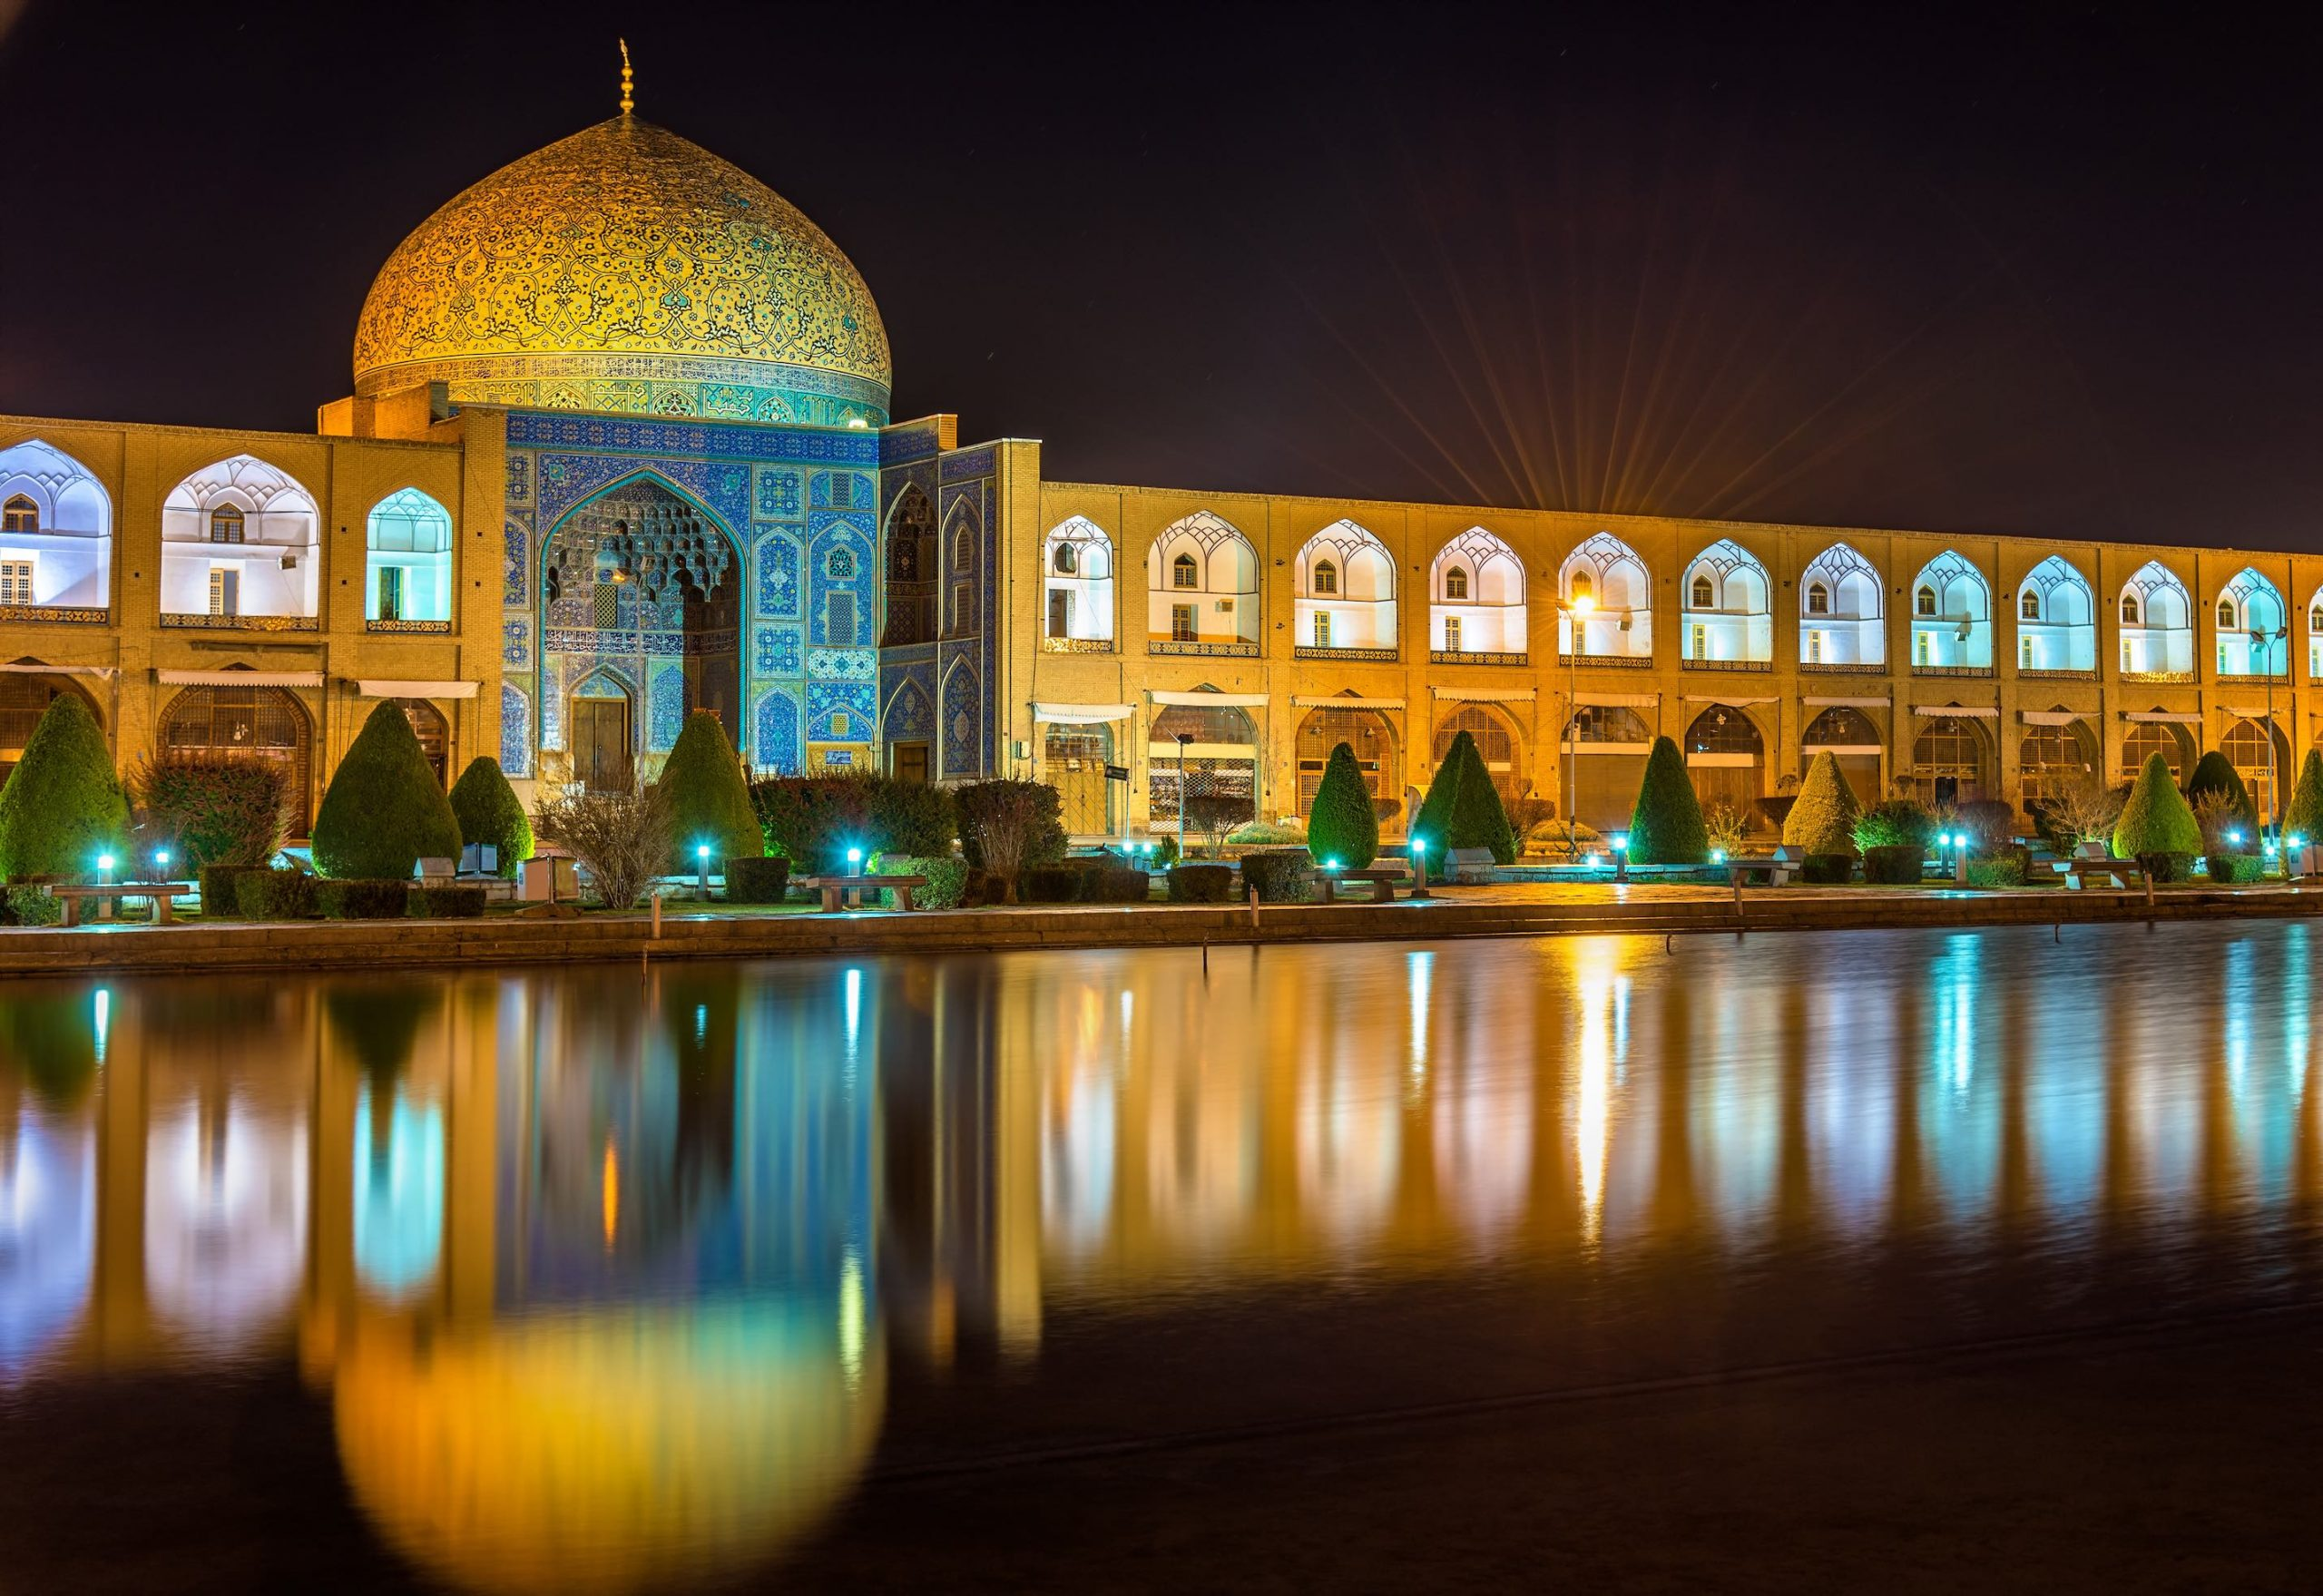 Iran Tours - NZ Travel and Tour - Sheikh Lotfollah Mosque on Naqsh-e Jahan Square of Isfahan, Iran-full view-M